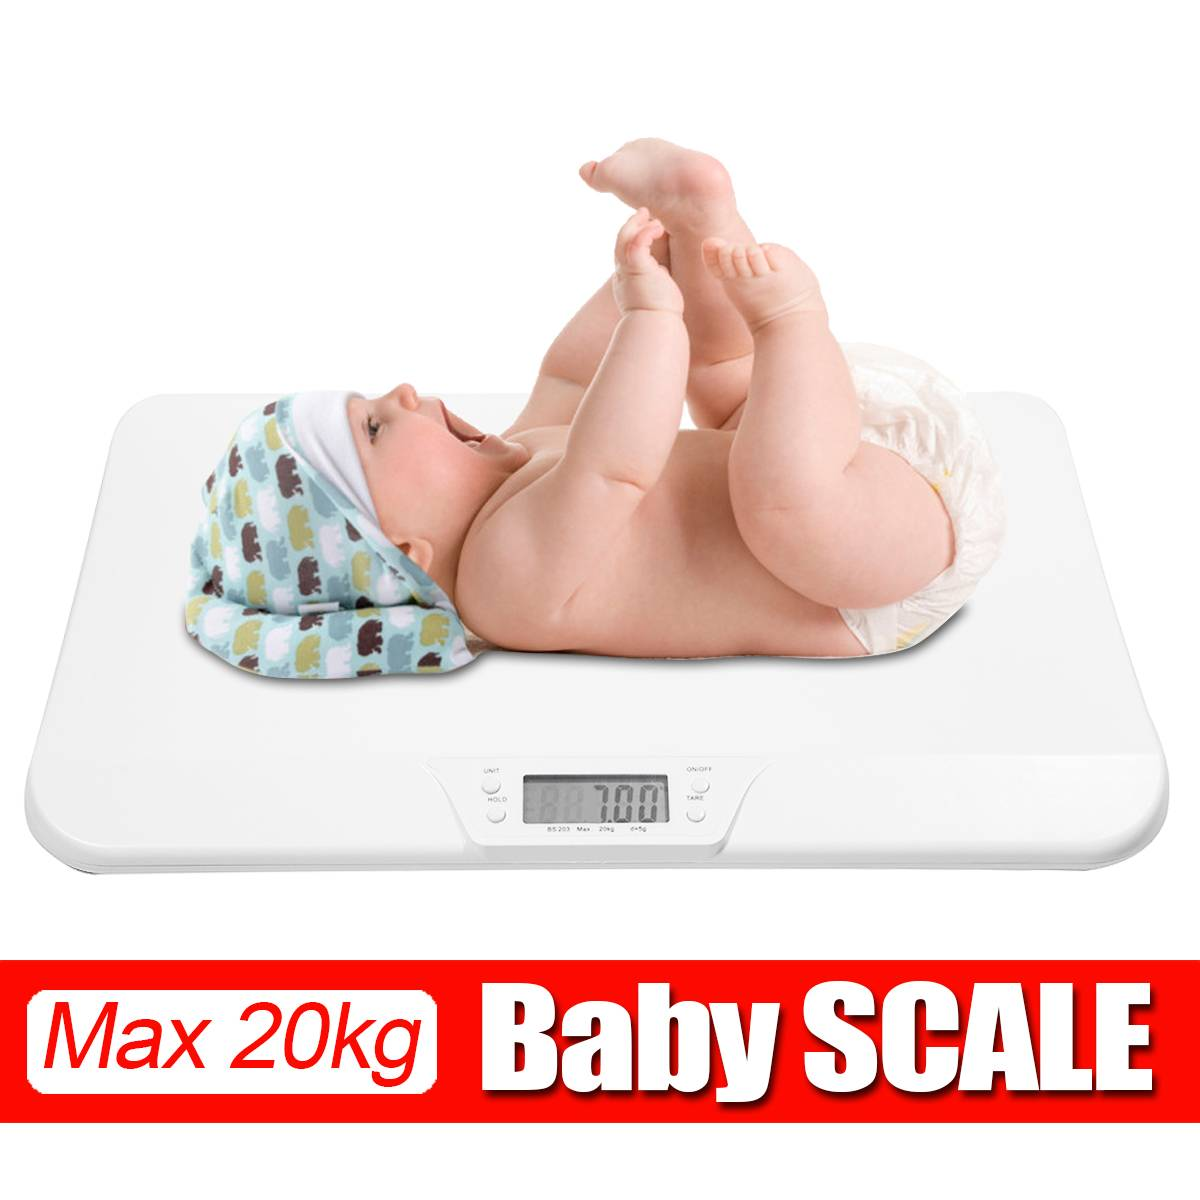 20kg Newborn Baby Scale Weight Infant Scale Toddler Grow Electronic Pets Scale Meter Digital Professional body scale with LCD